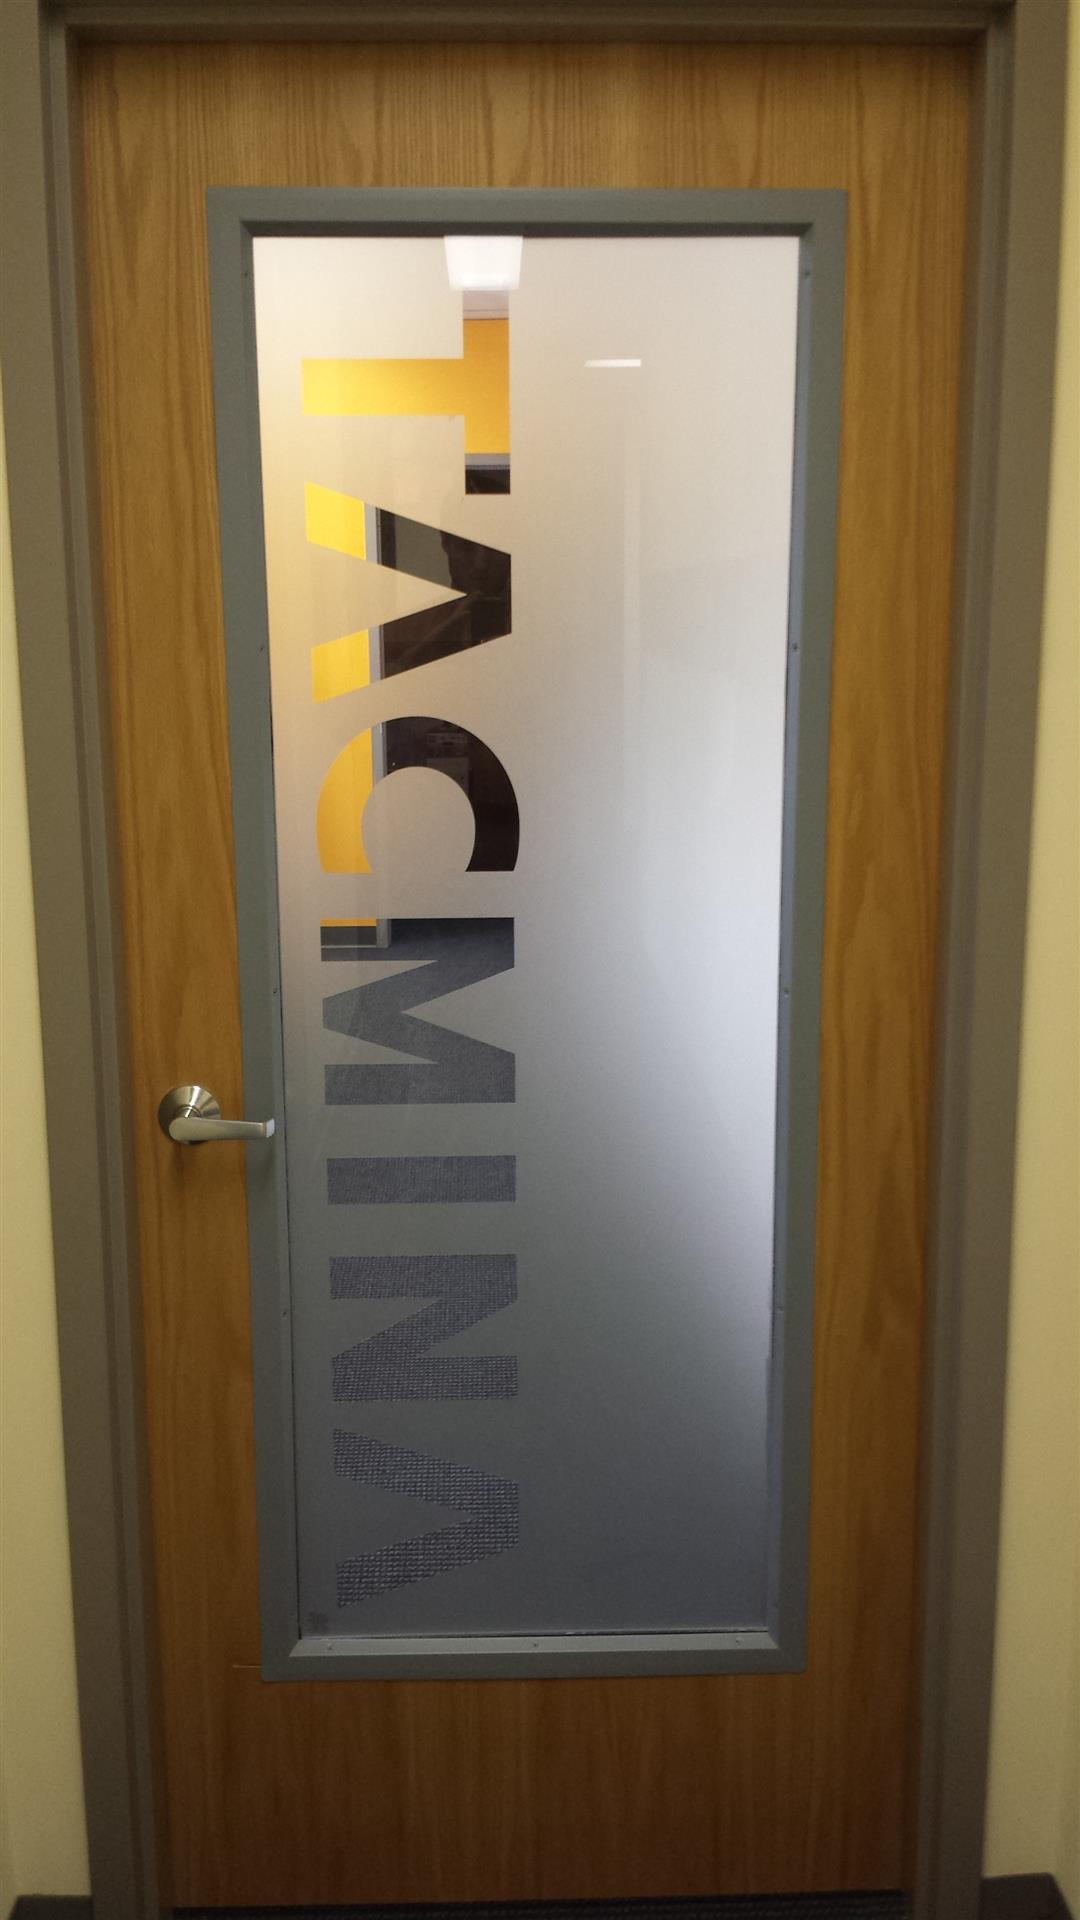 Conference Room Door Sign